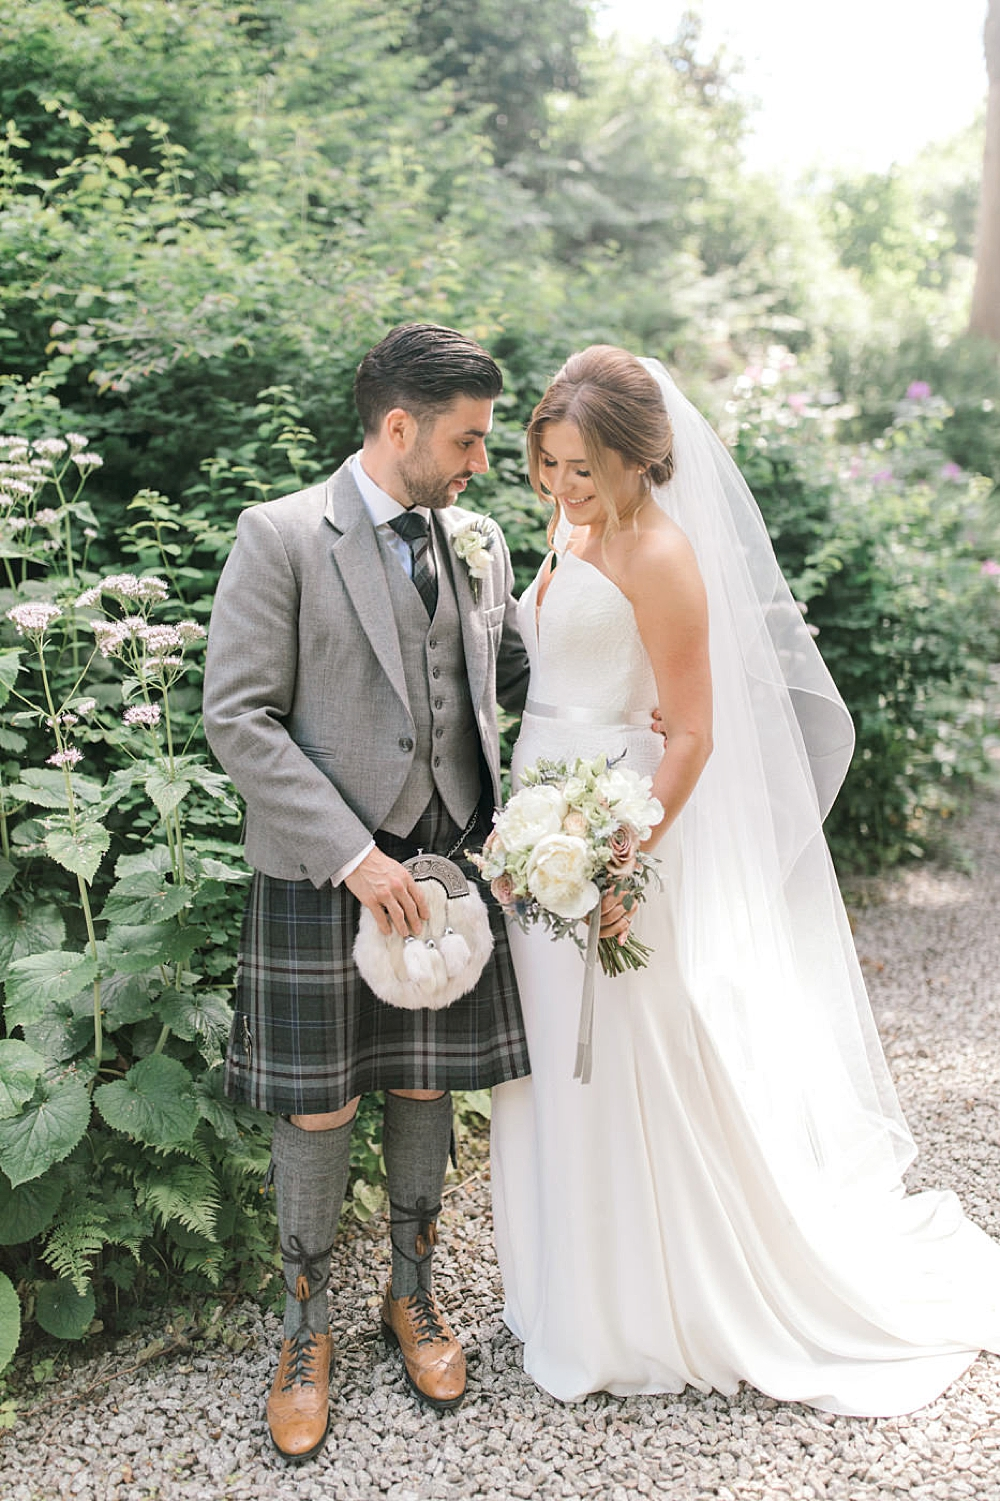 Fine Art Wedding Photographers,The Gibsons,elegant wedding photographers glasgow,light and airy wedding photographers glasgow,light and bright wedding photographers scotland,natural wedding photographers,romantic photographers Scotland,